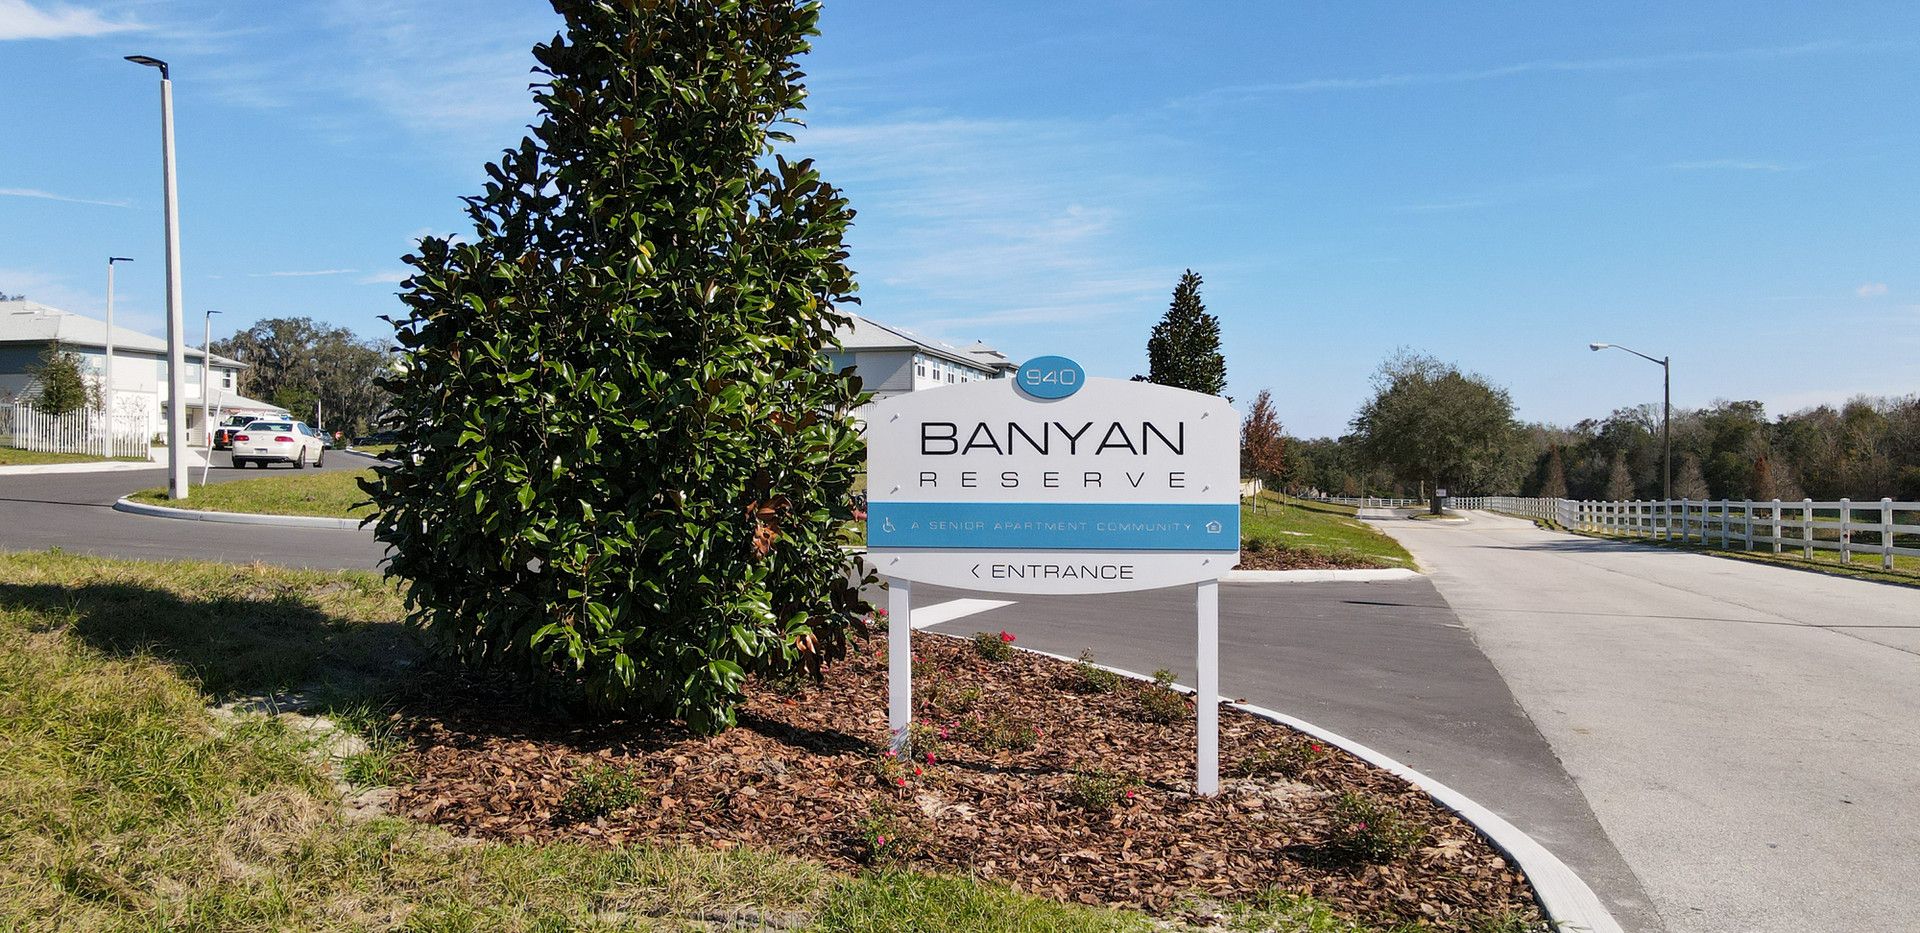 Banyan Reserve welcome sign